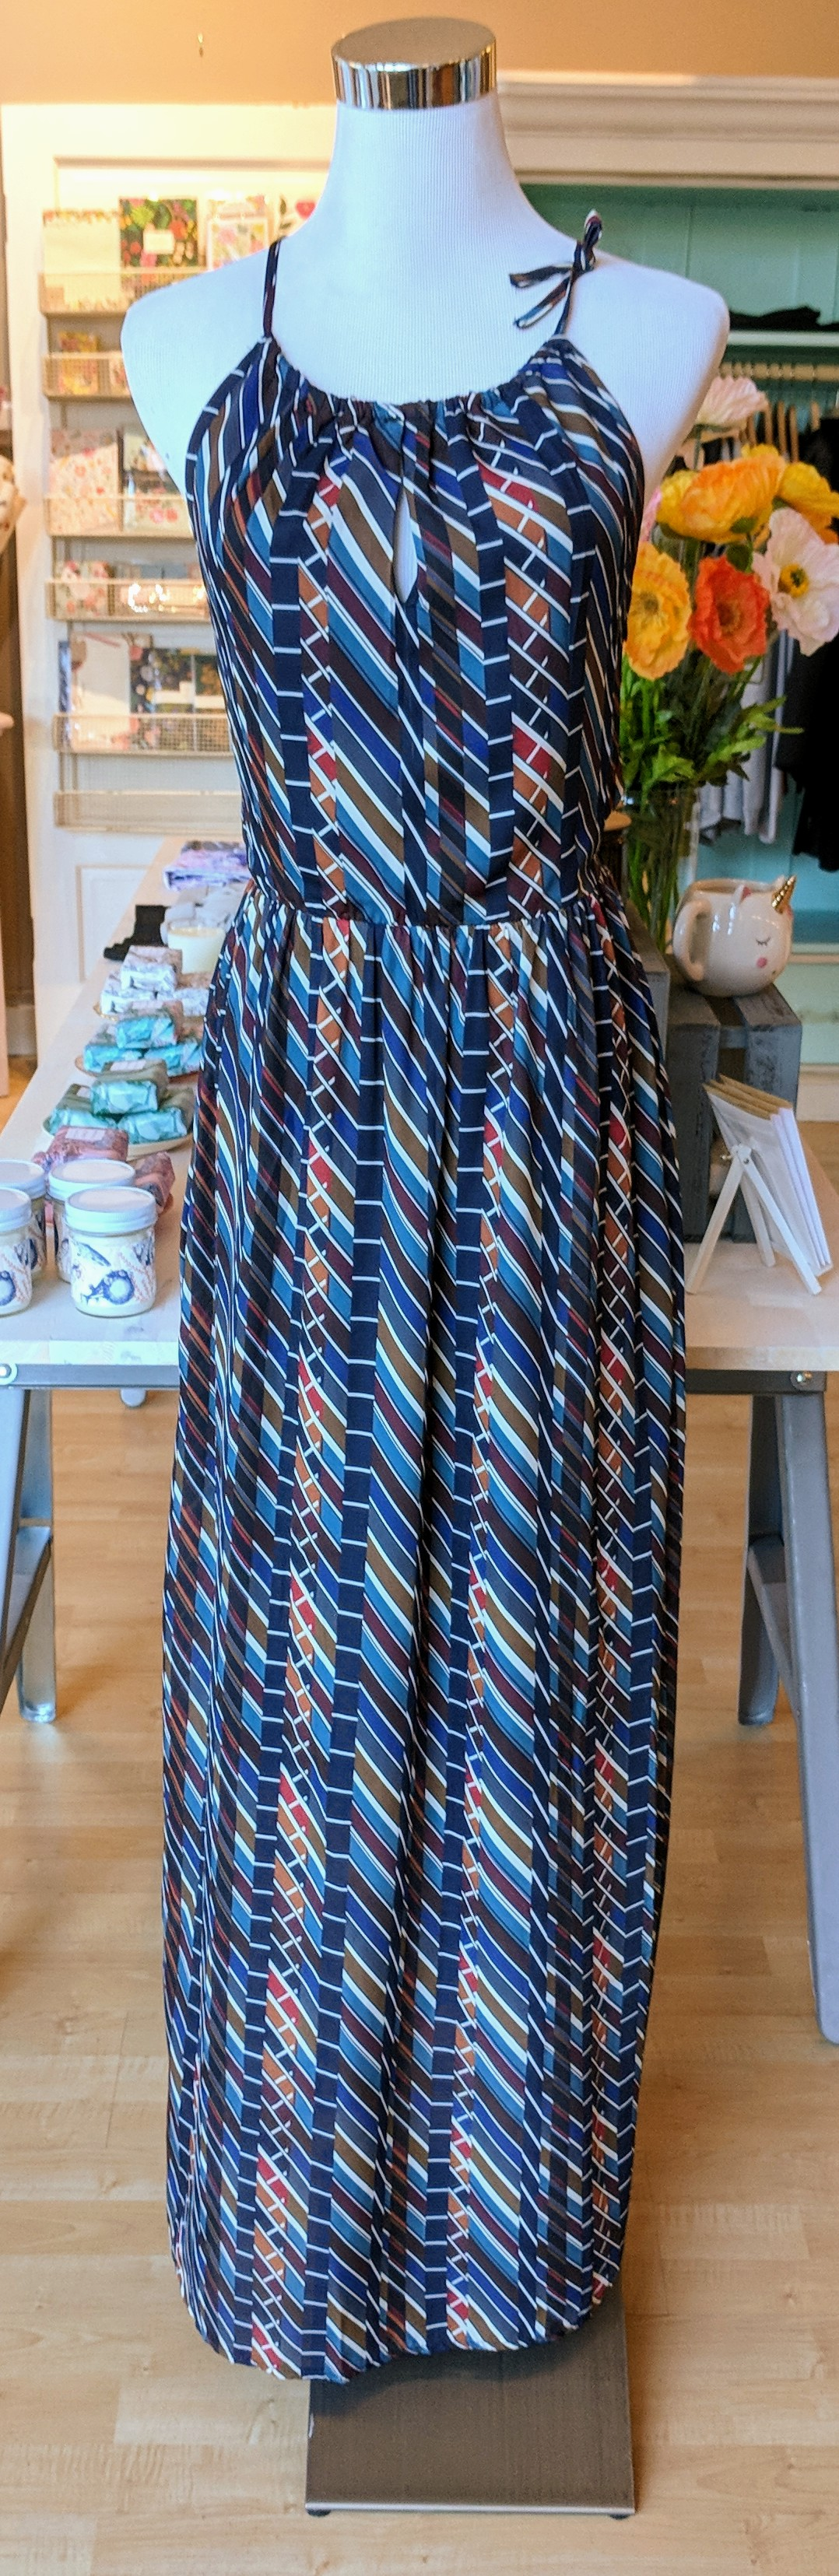 Multi color print dress with tie neckline.